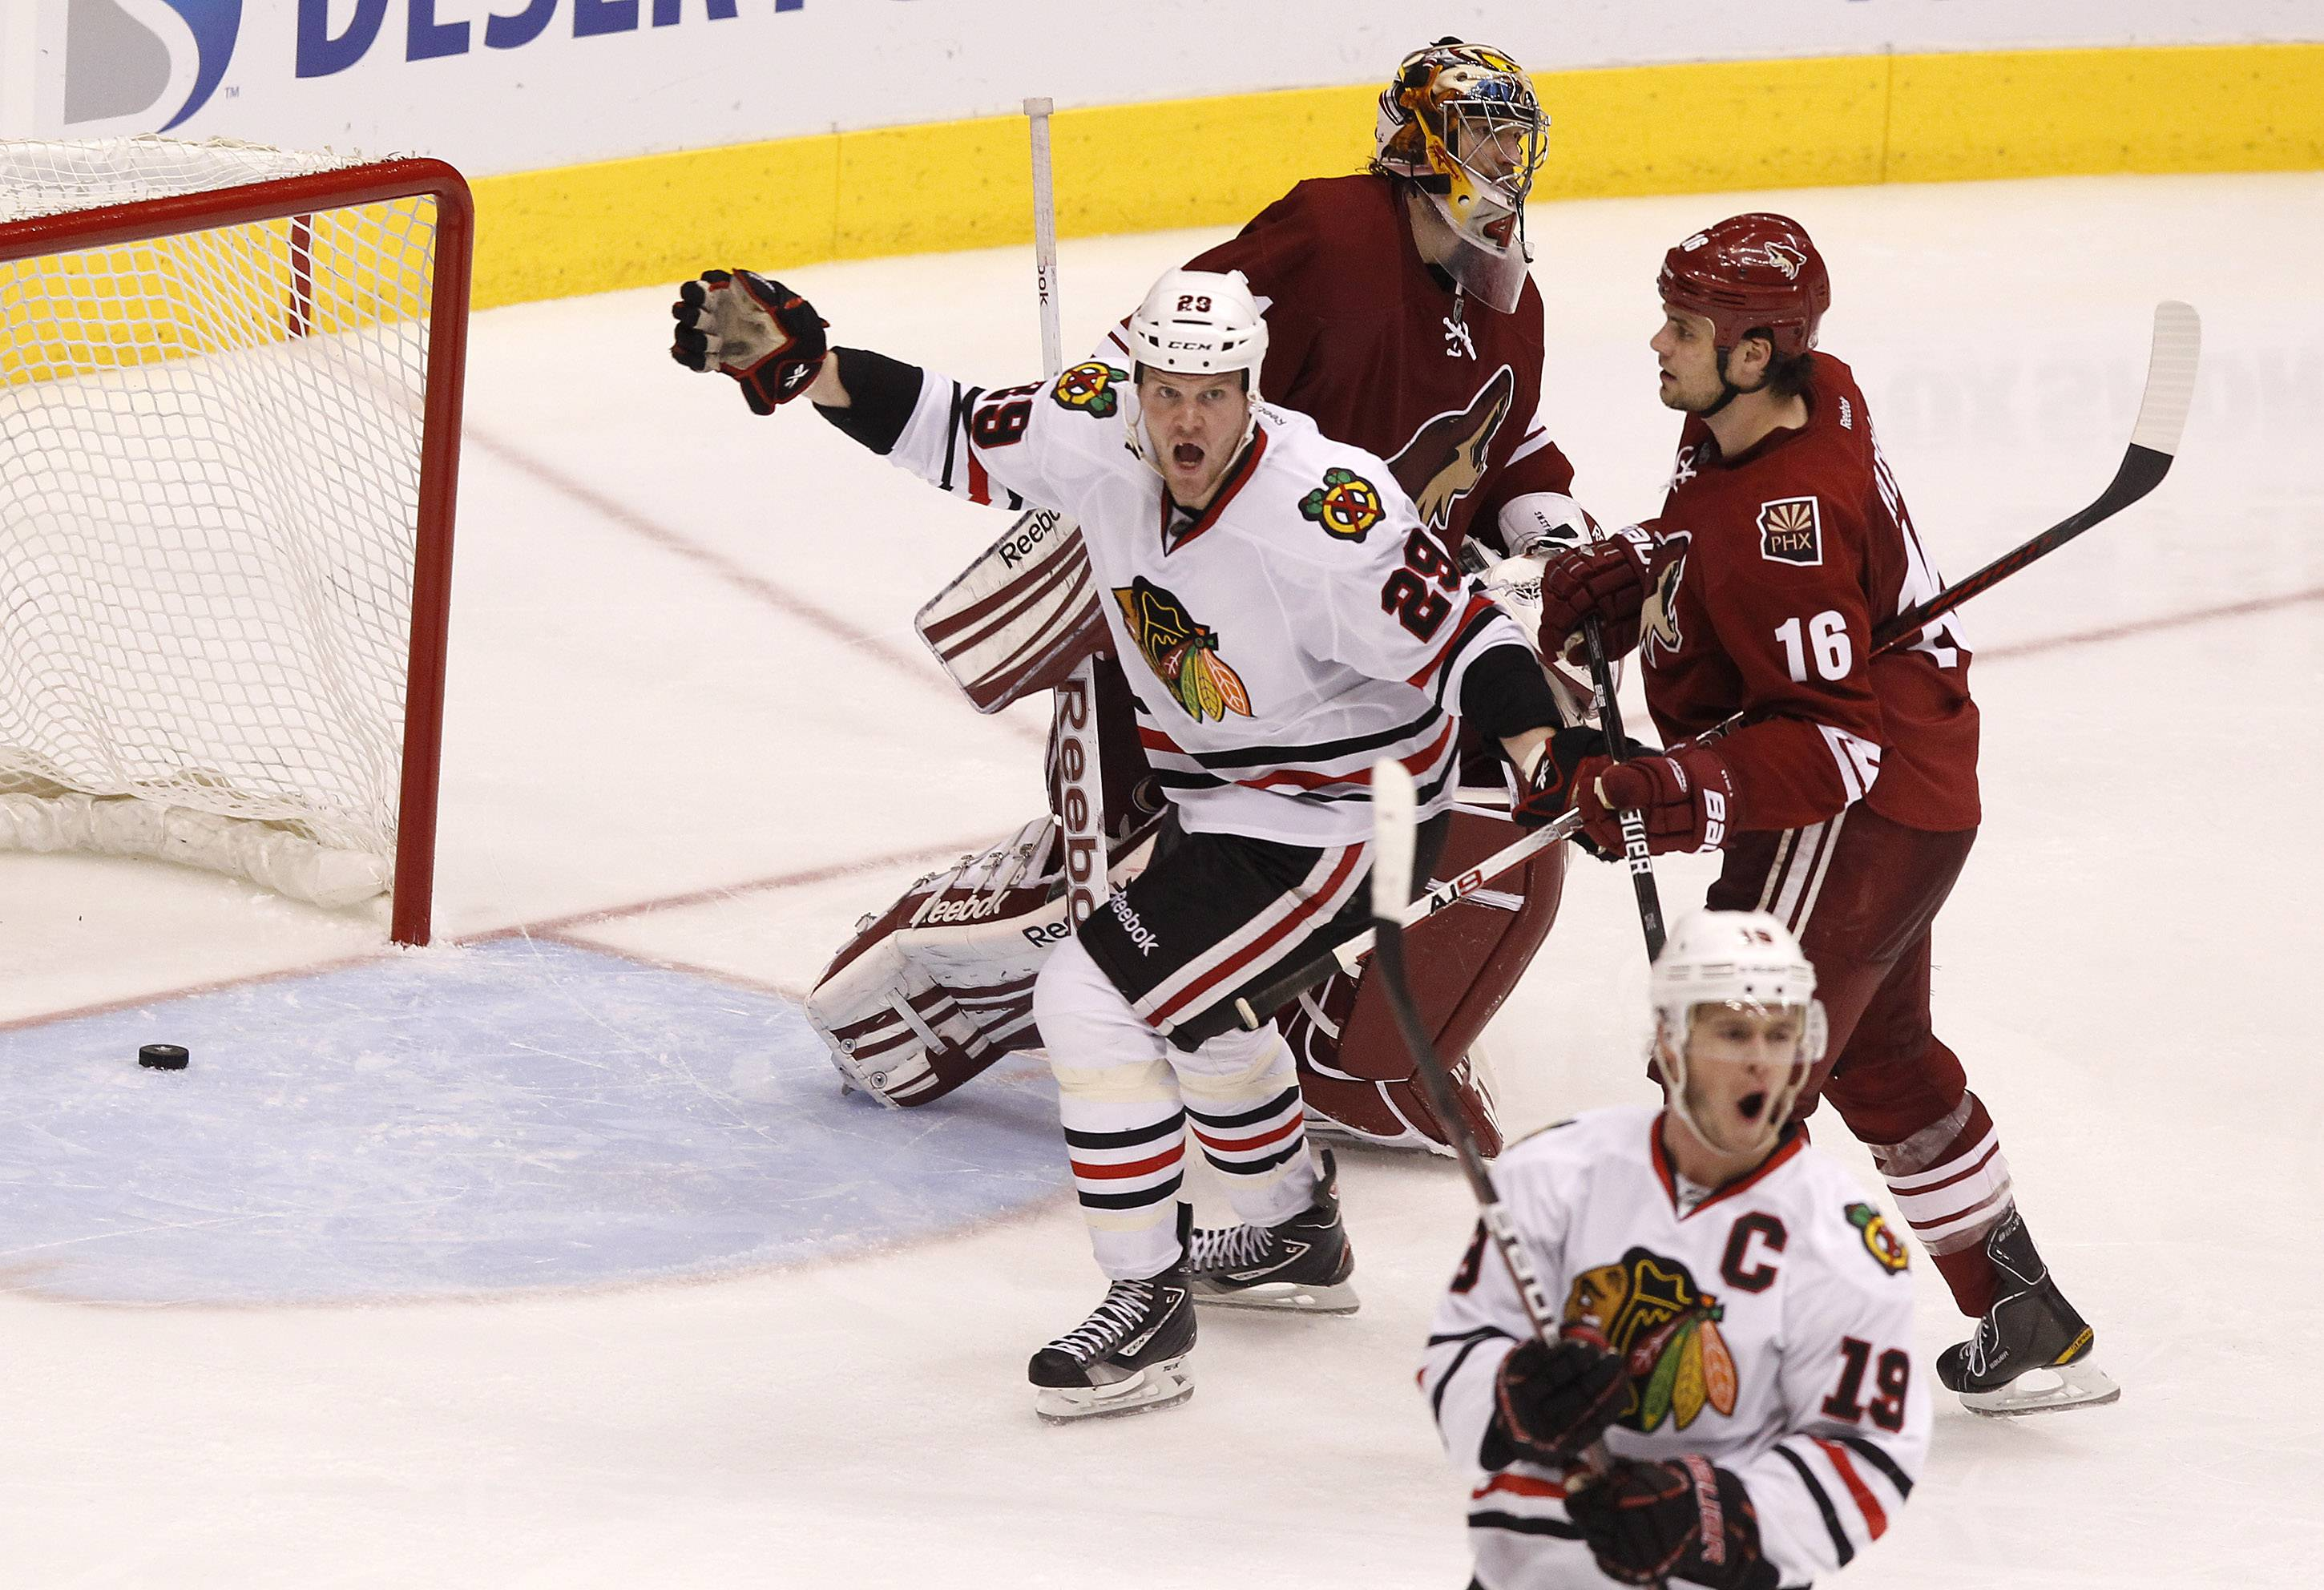 Blackhawks stay alive with 2-1 OT win